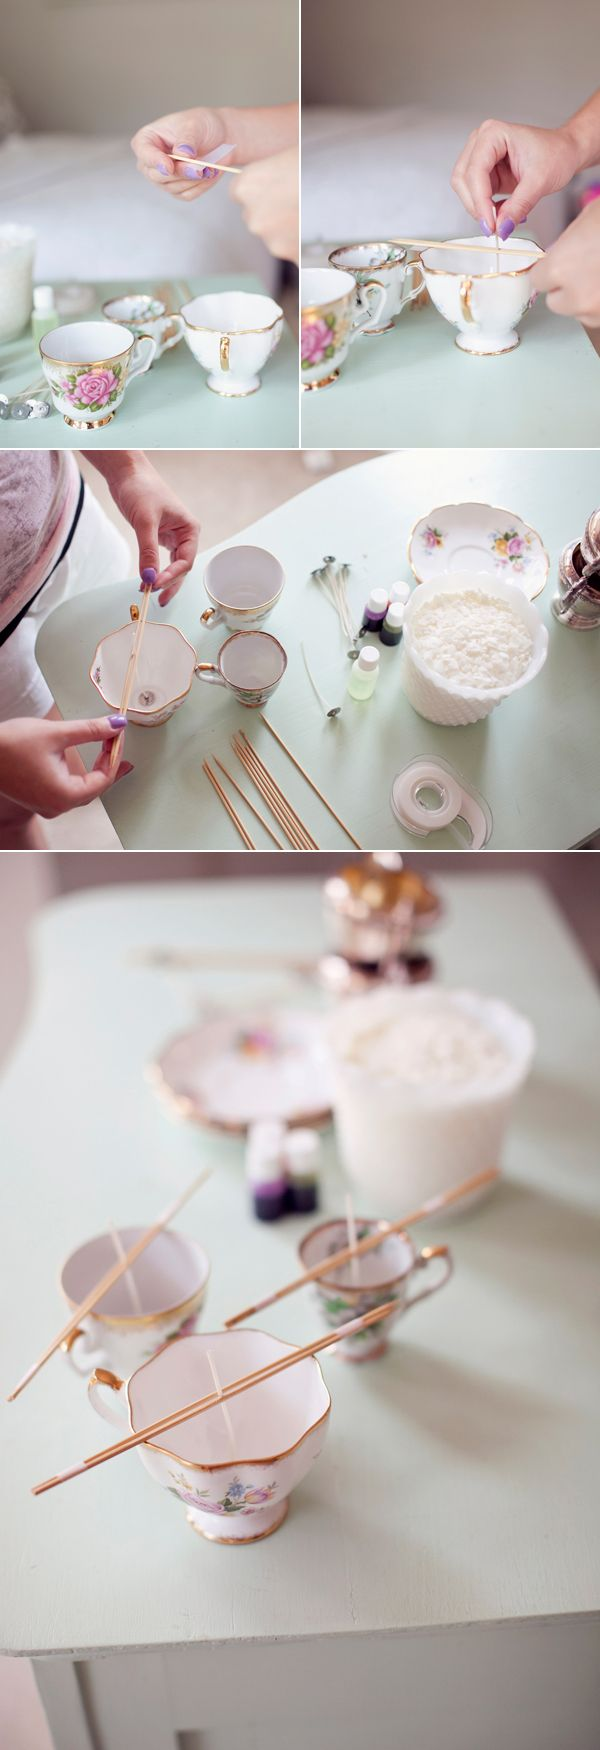 #DIY Vintage Teacup Candles - VERY easy and would be a cute gift/party favor.